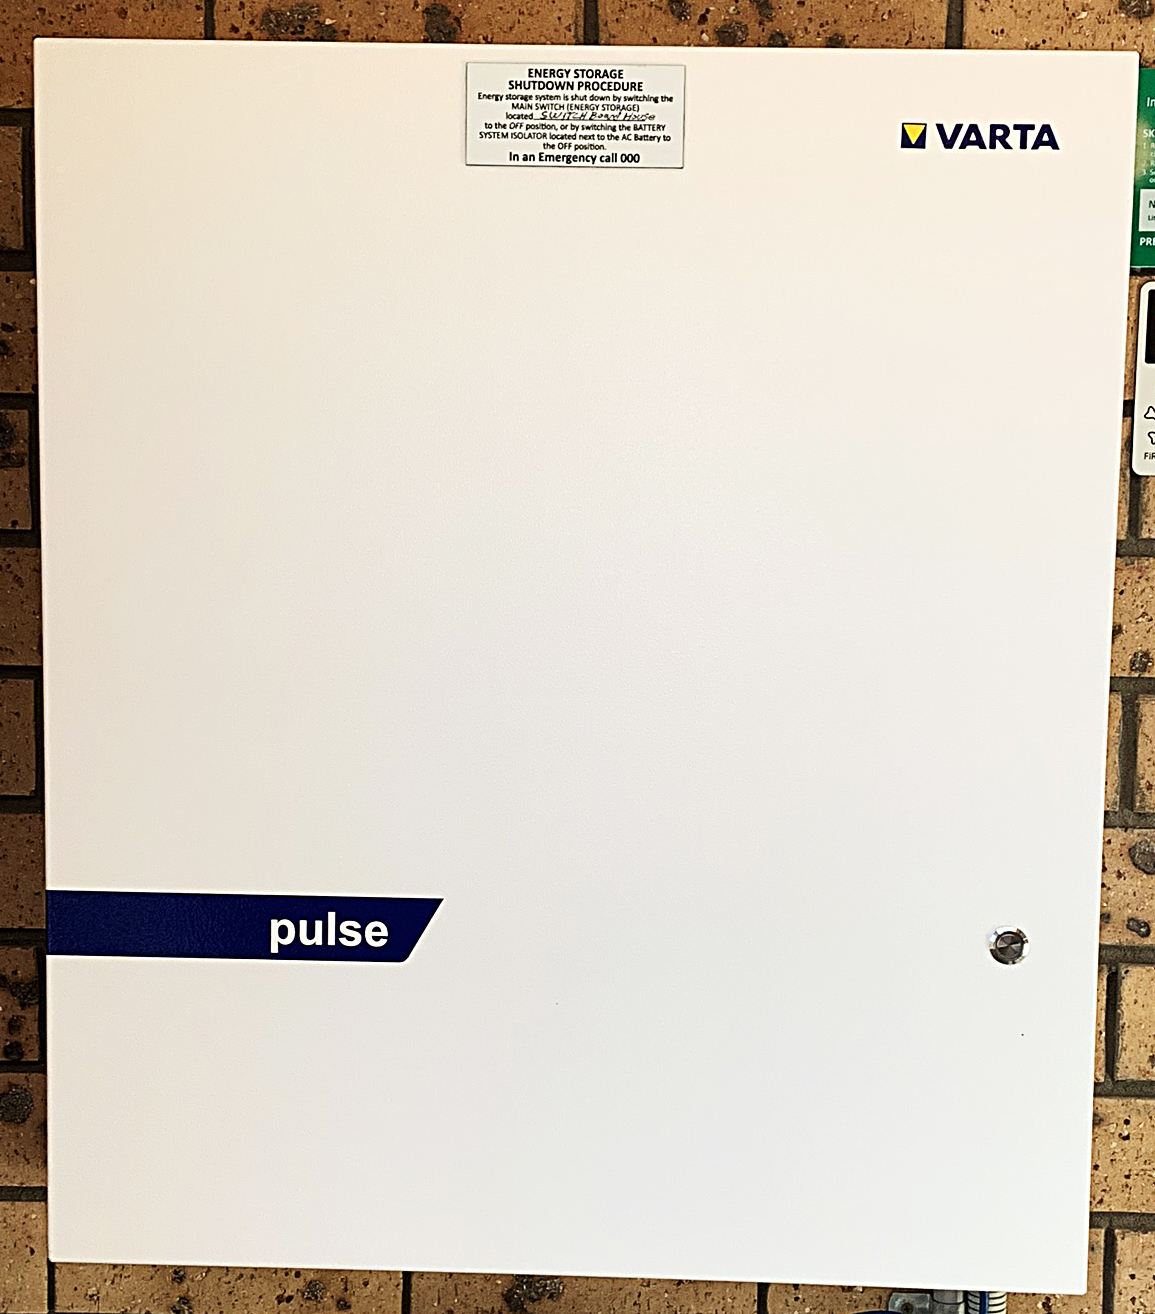 The VARTA pulse 6 installation at the integration testing site in Newcastle.